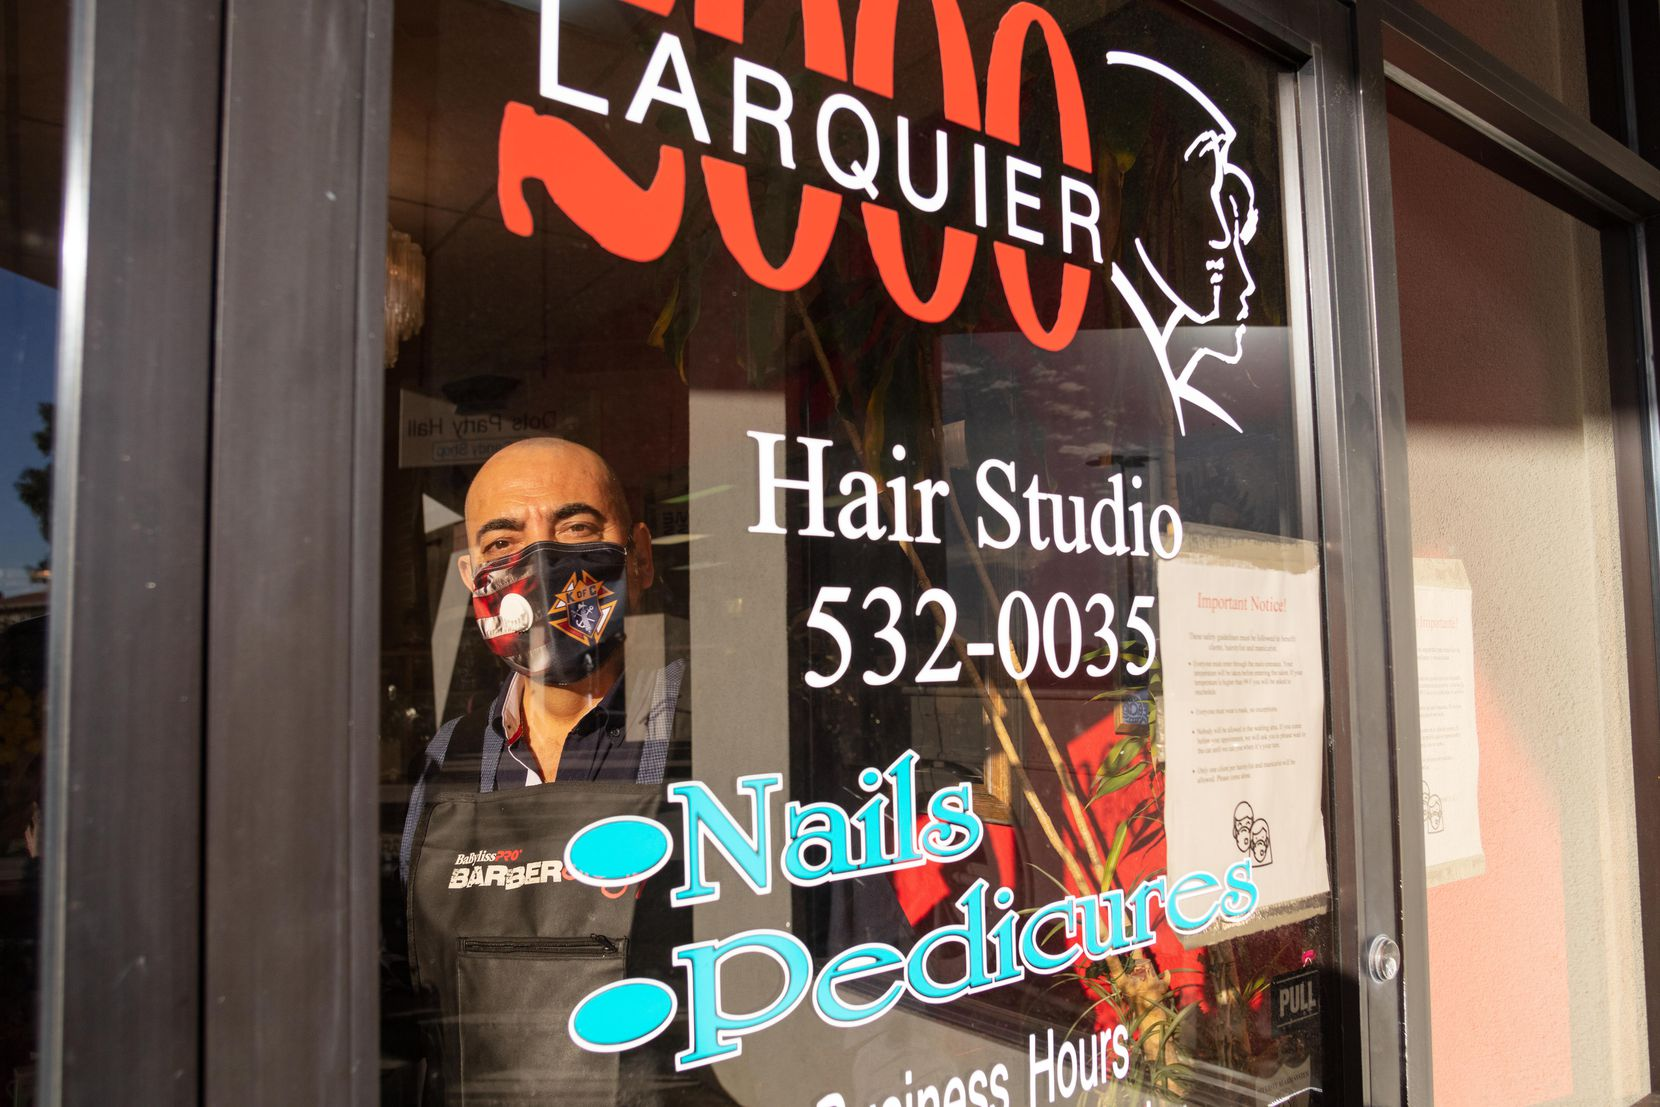 Martin Larquier, owner of Larquier 2000 Hair Salon in El Paso, has been struggling keeping his salon open. While taking all sanitary precautions, he also checks his clients' temperatures and asks if they have any COVID-19 symptoms before they enter the salon.